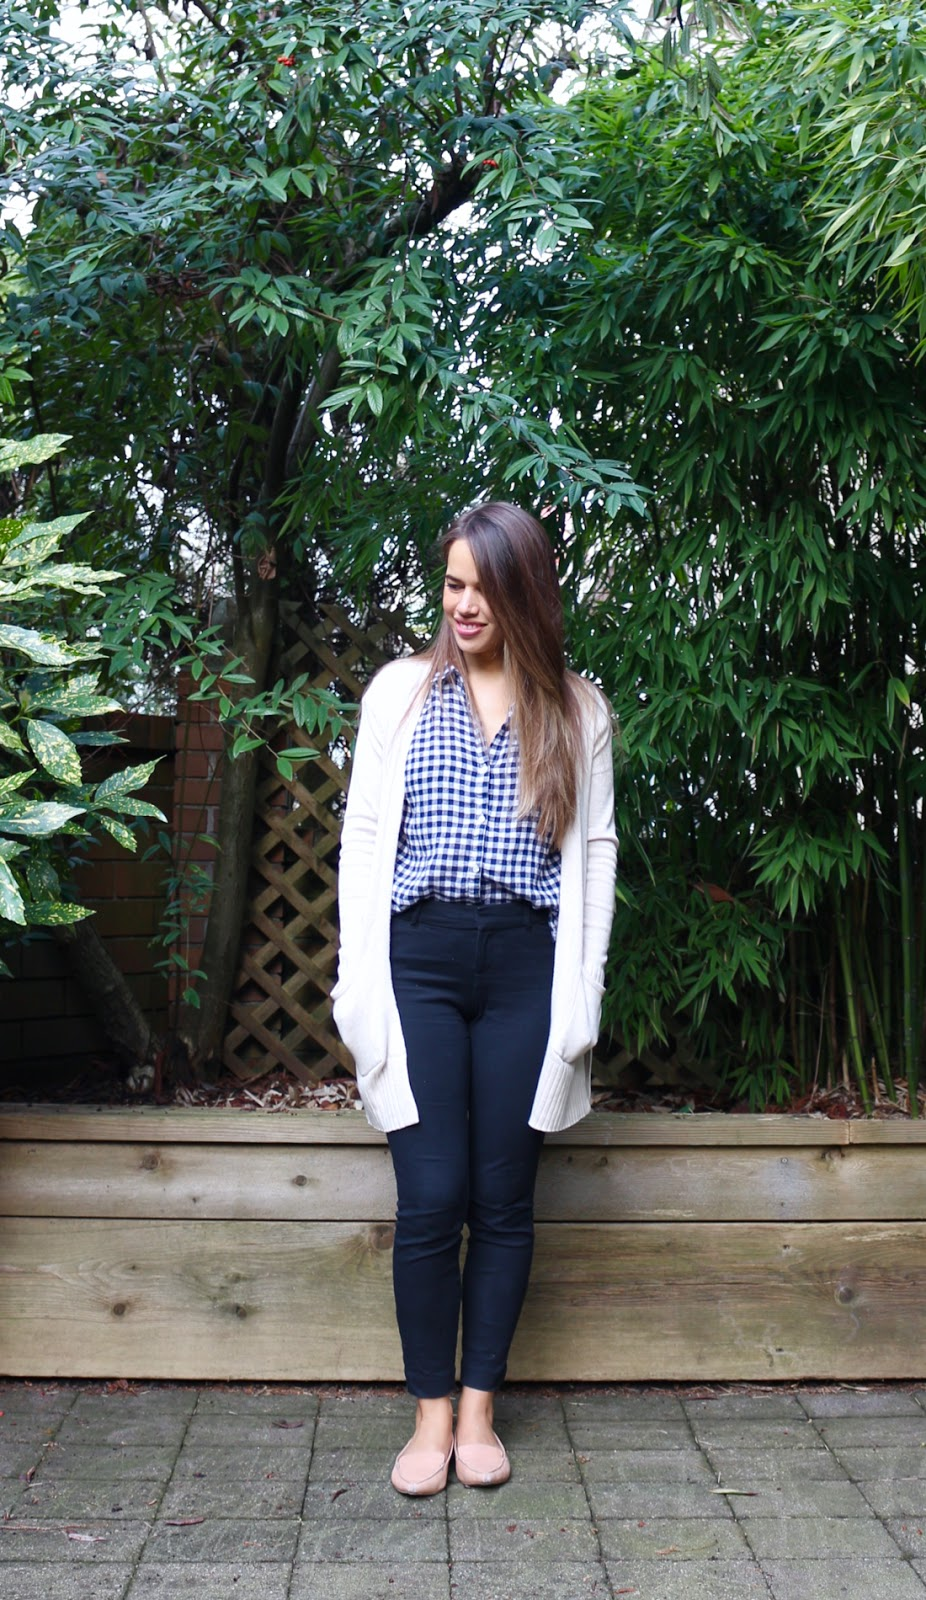 Jules in Flats - Gingham Top with Open Front Sweater (Business Casual Spring Workwear on a Budget)